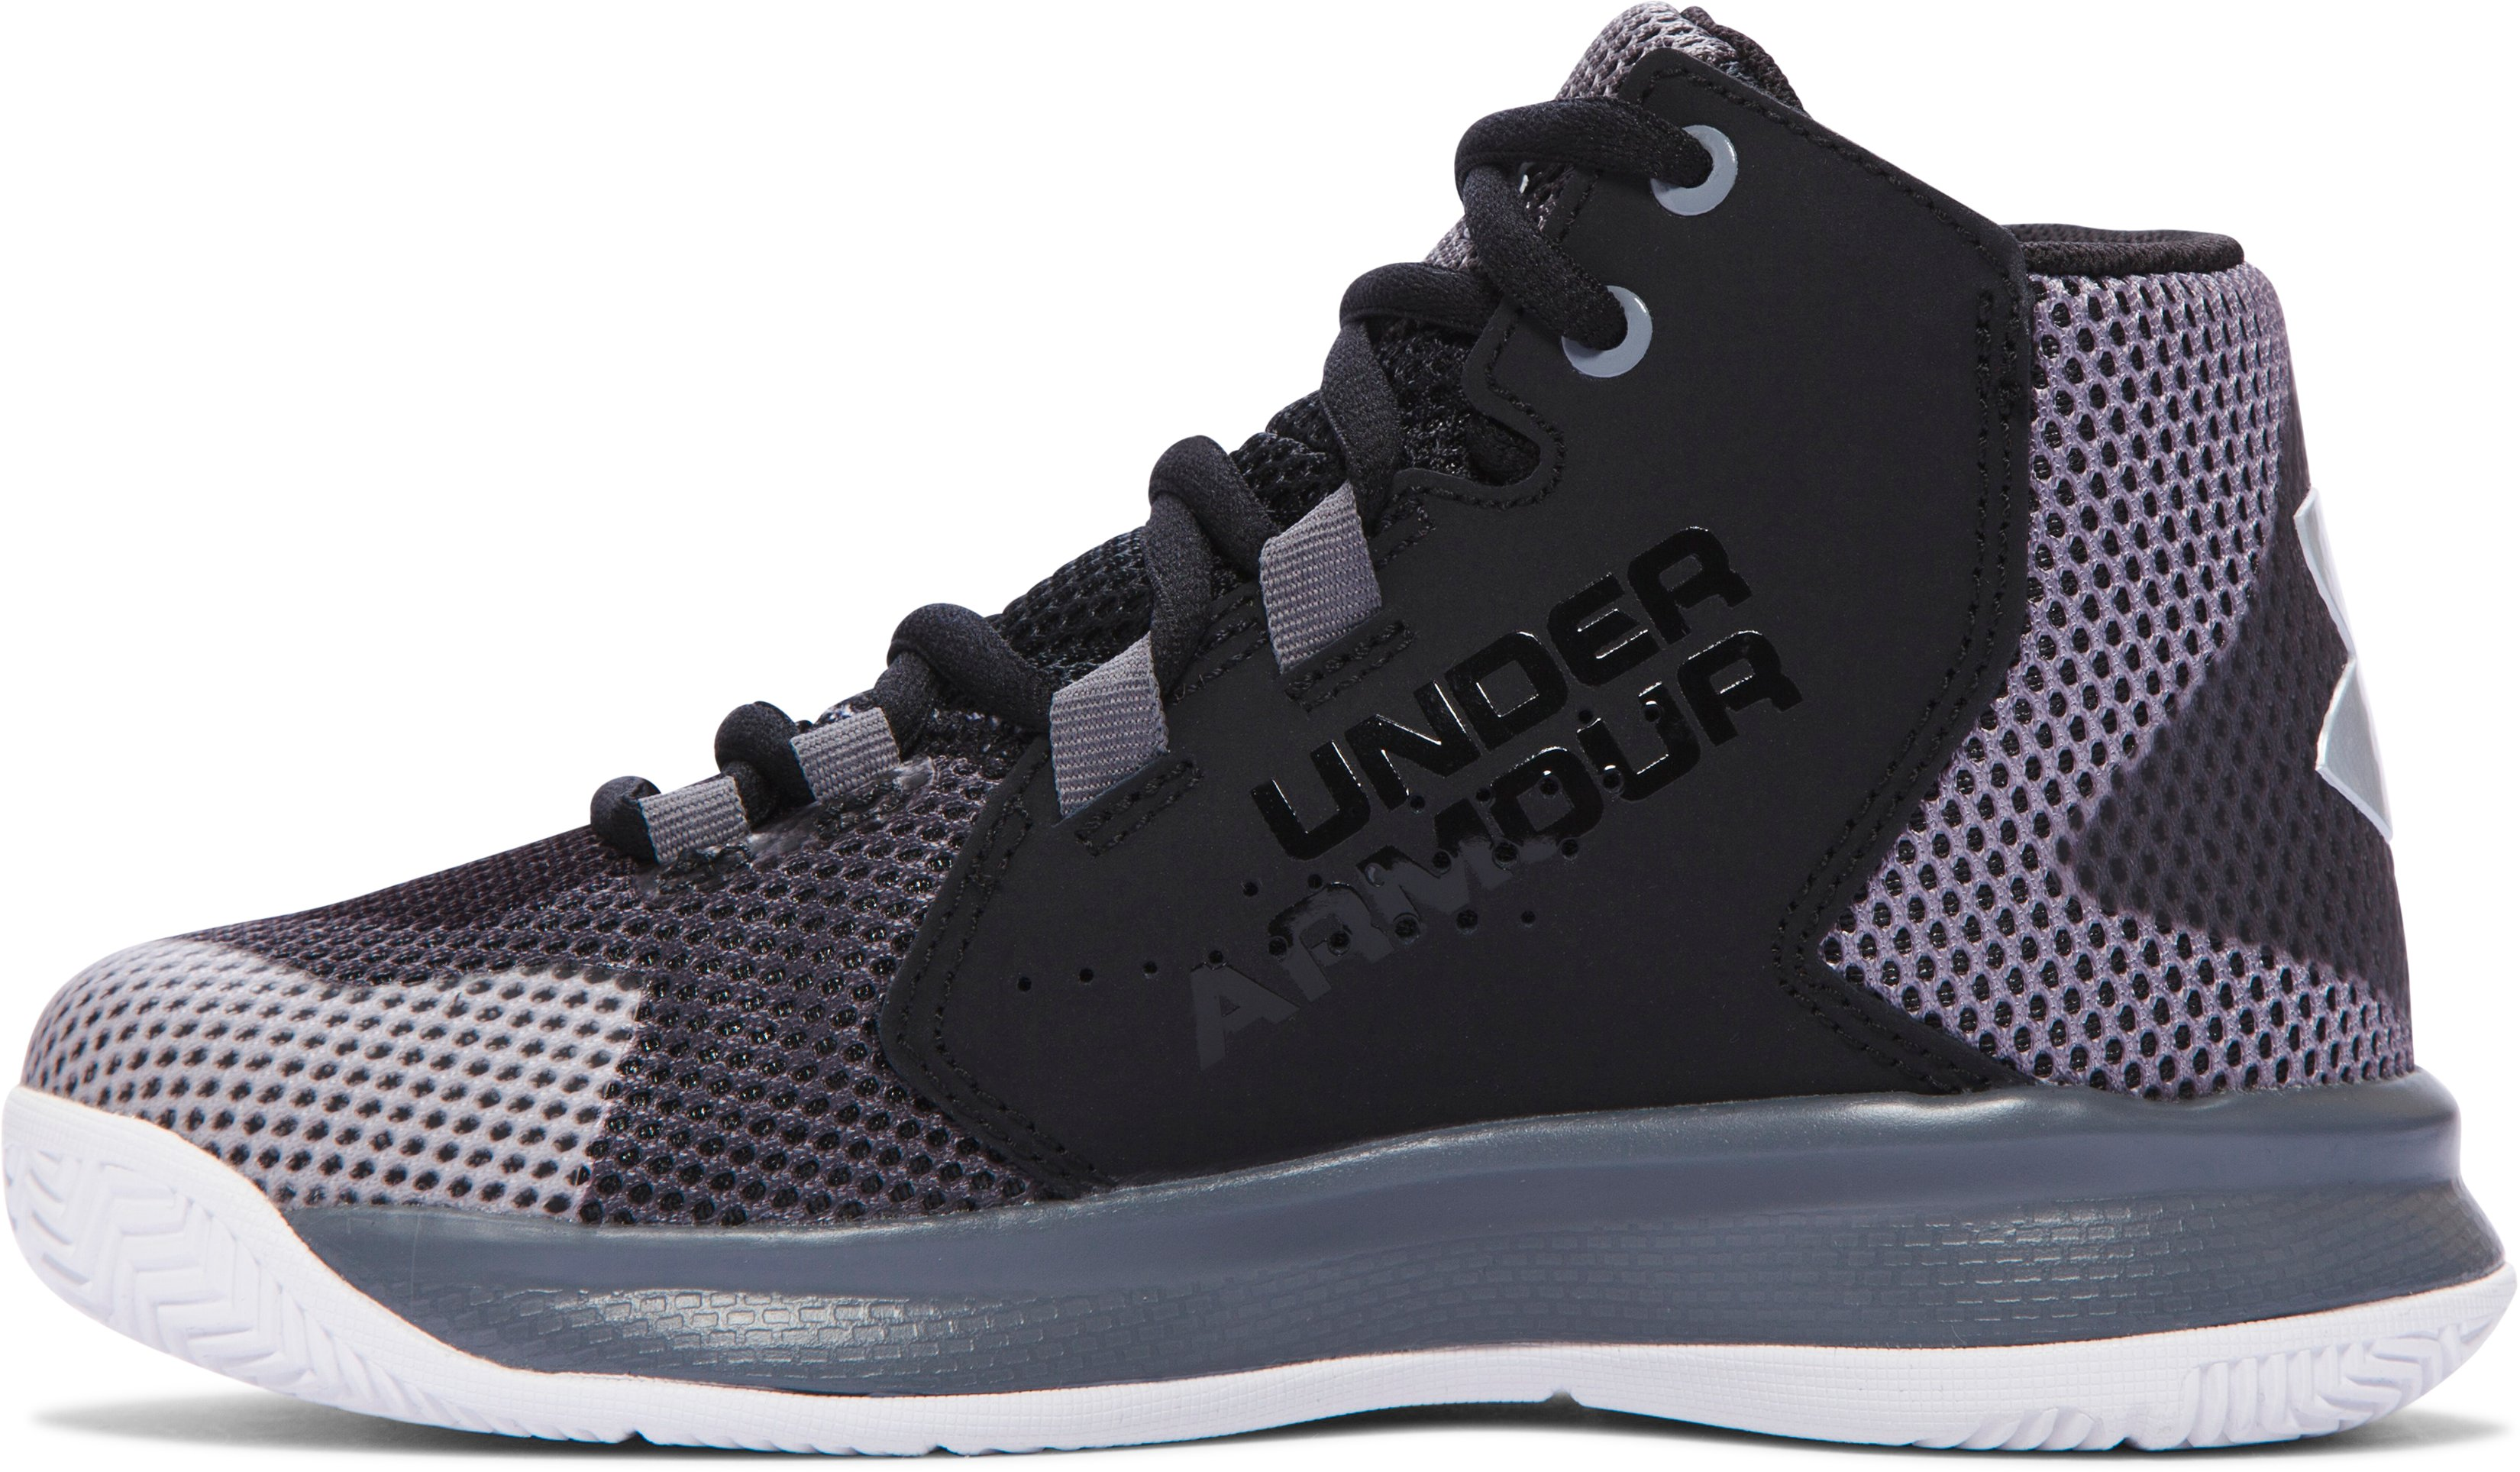 Boys' Pre-School UA Torch Fade Basketball Shoes, Black